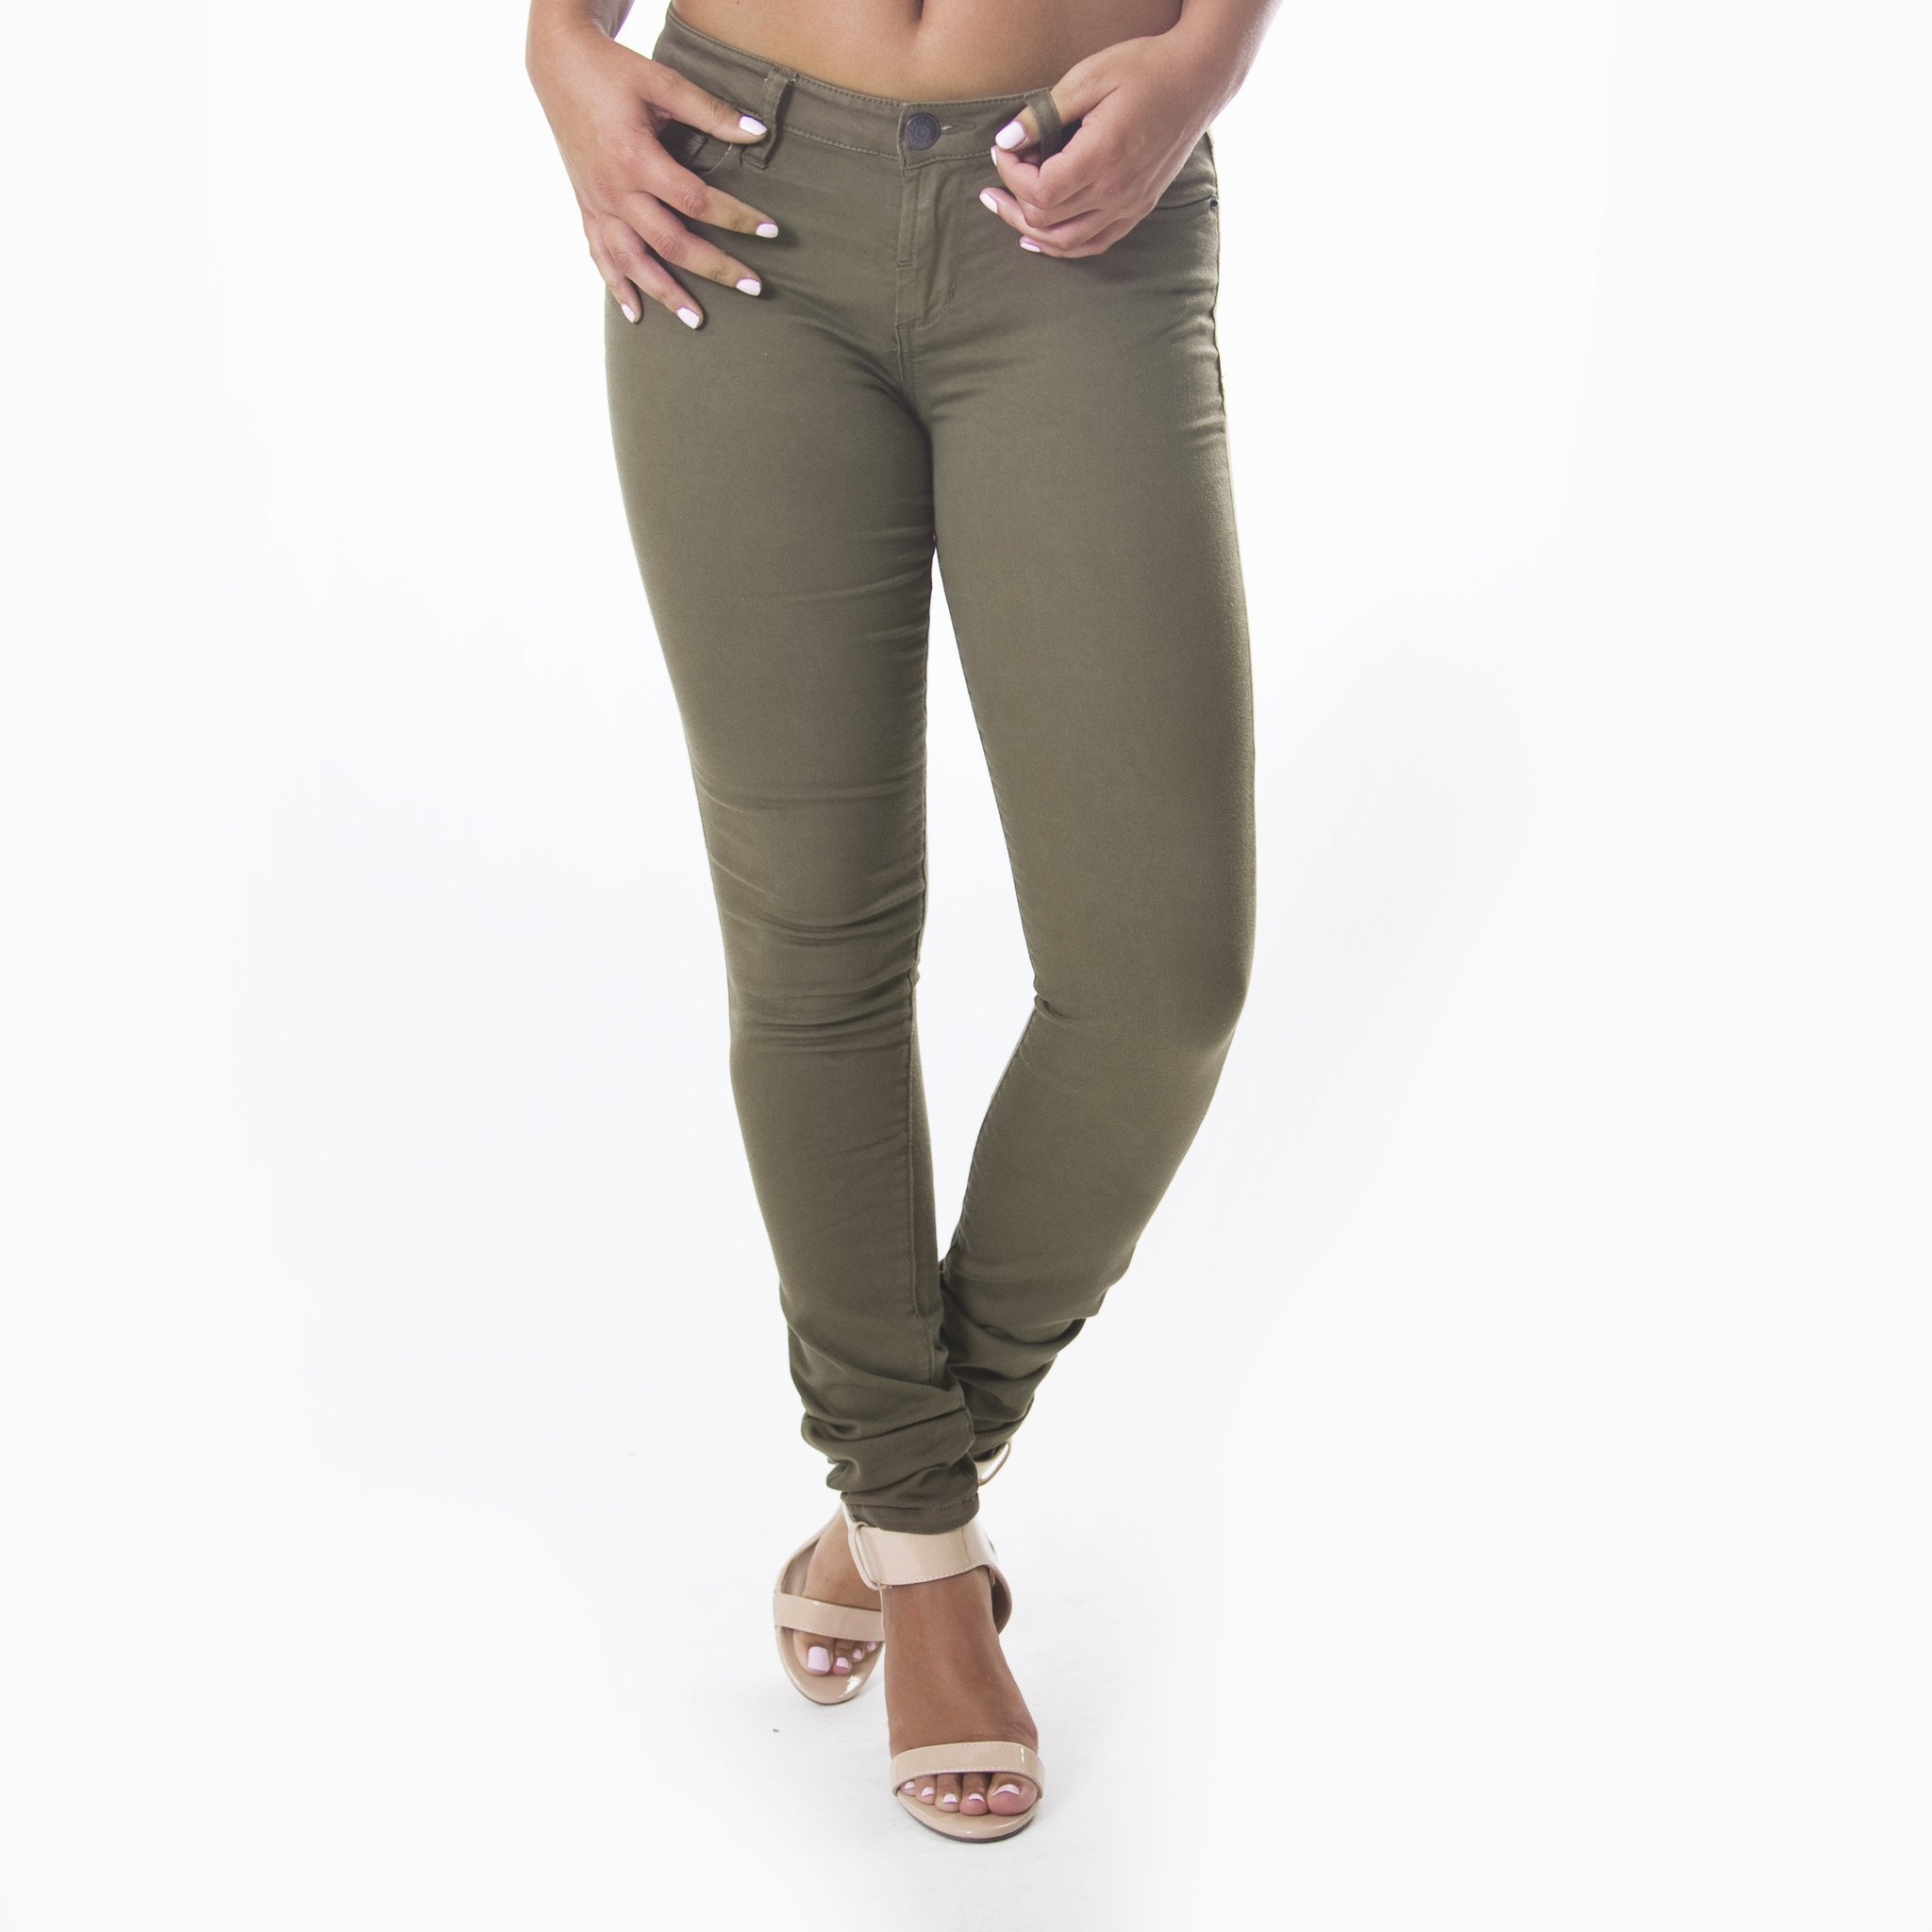 Image of Classic Skinny Pants In Olive